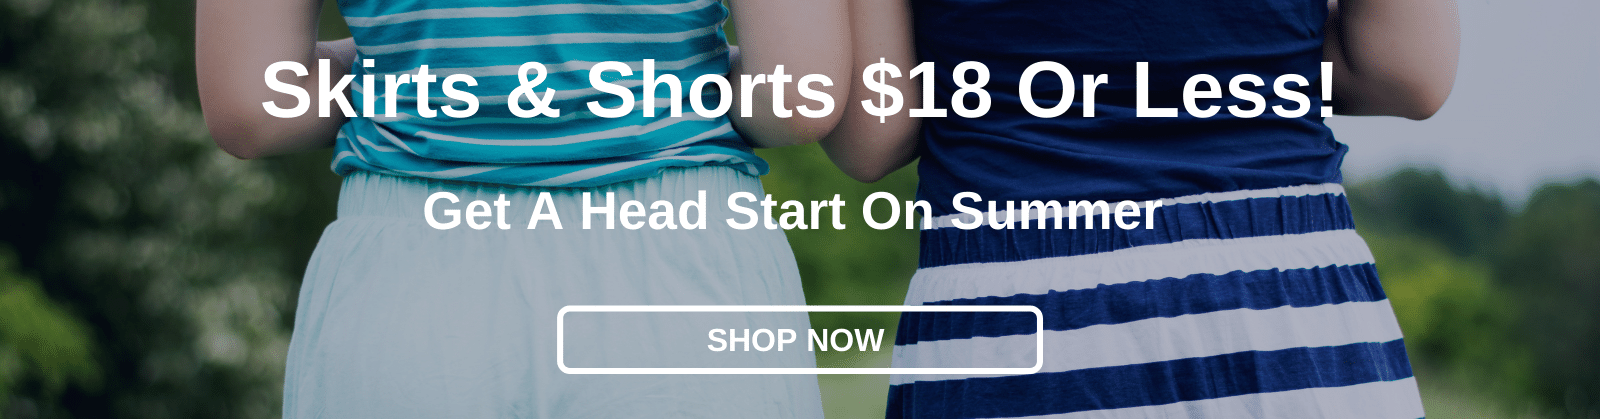 Skirts & Shorts $18 Or Less! Get A Head Start On Summer [Shop Now]